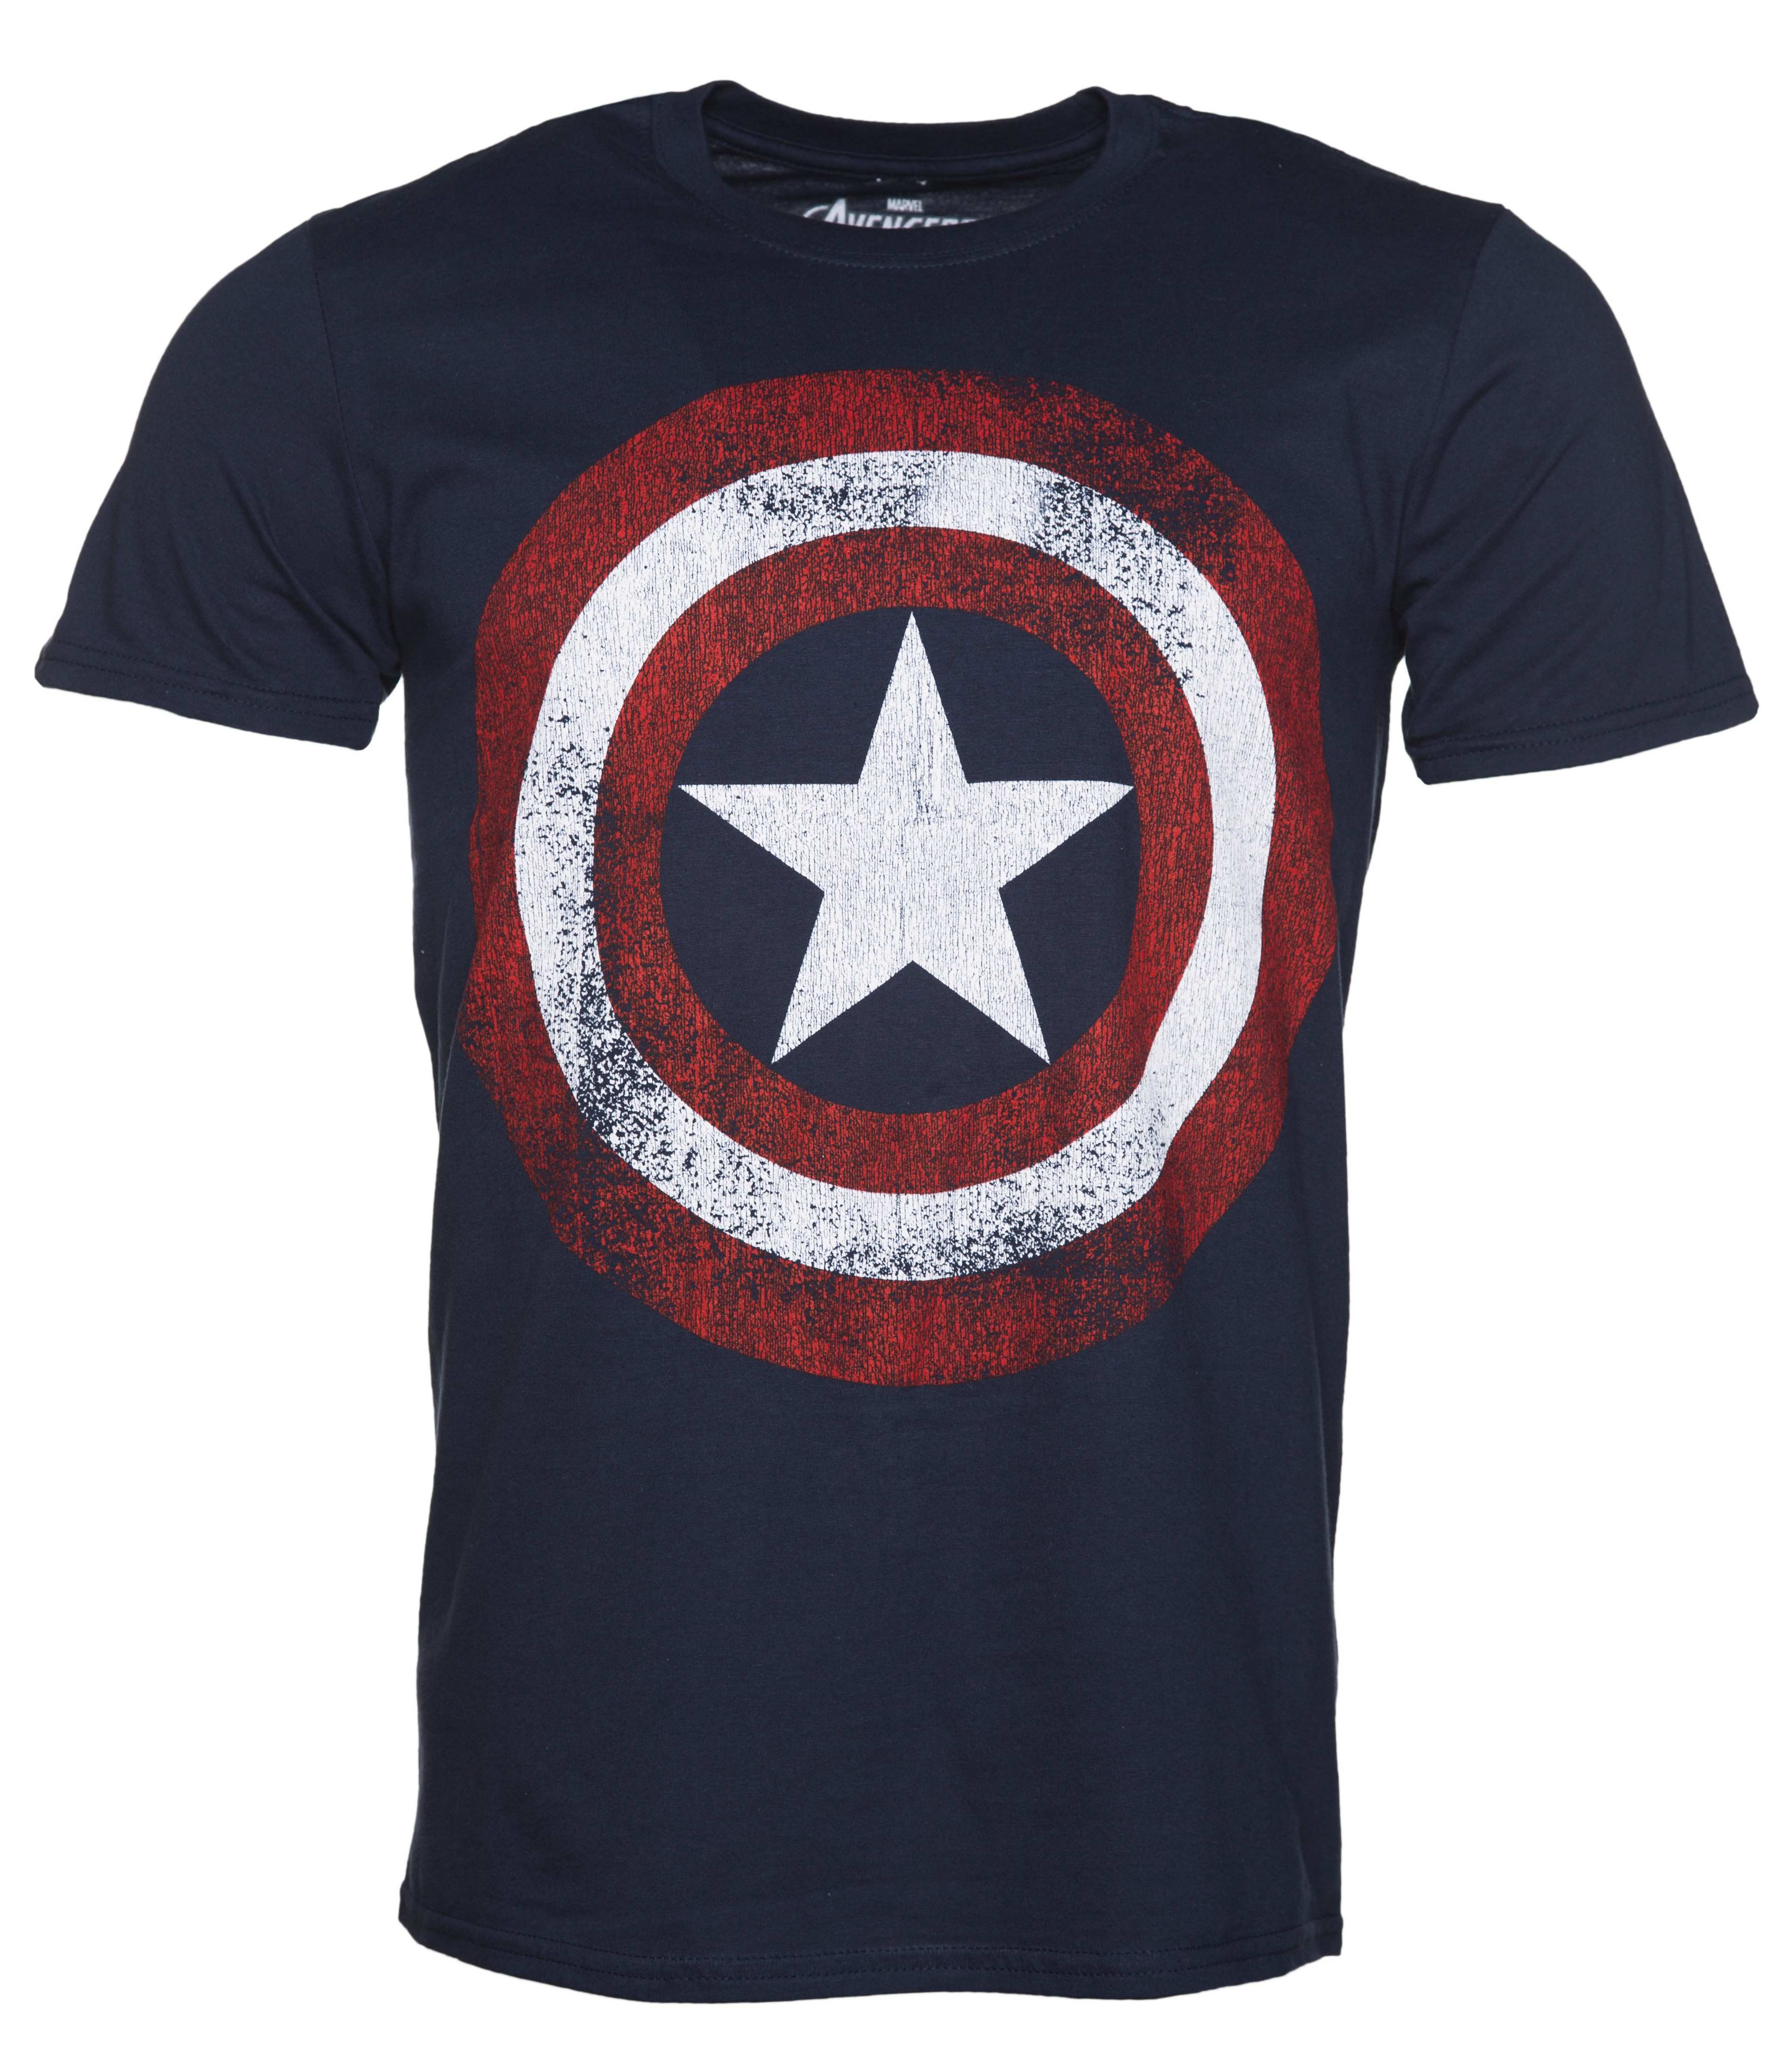 Shop ficial Captain America T Shirts Tops Homewares Gifts and